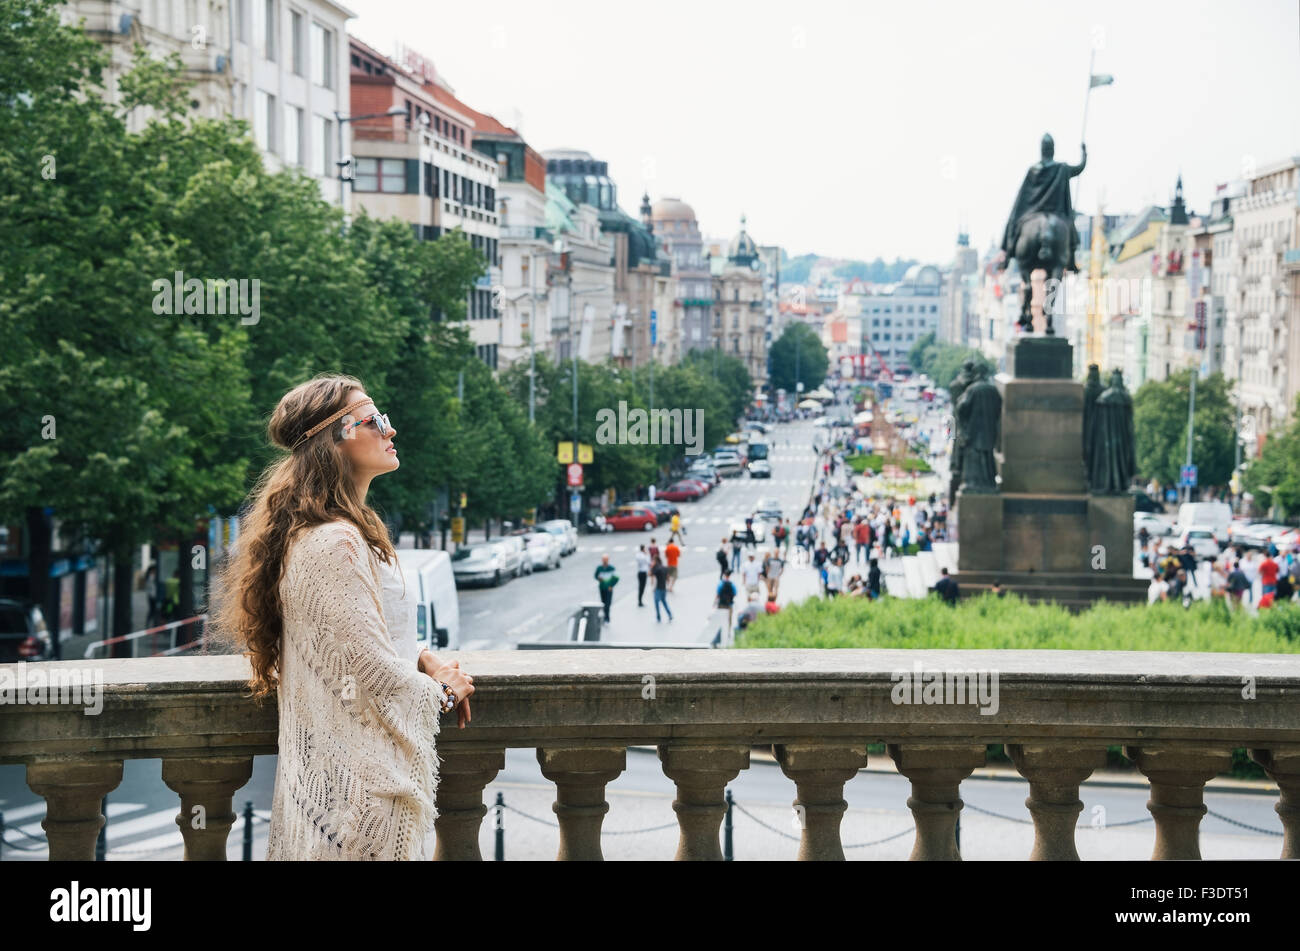 Longhaired bohemian woman tourist sightseeing on Wenceslas Square in Prague. In the background Saint Wenceslas statue - Stock Image